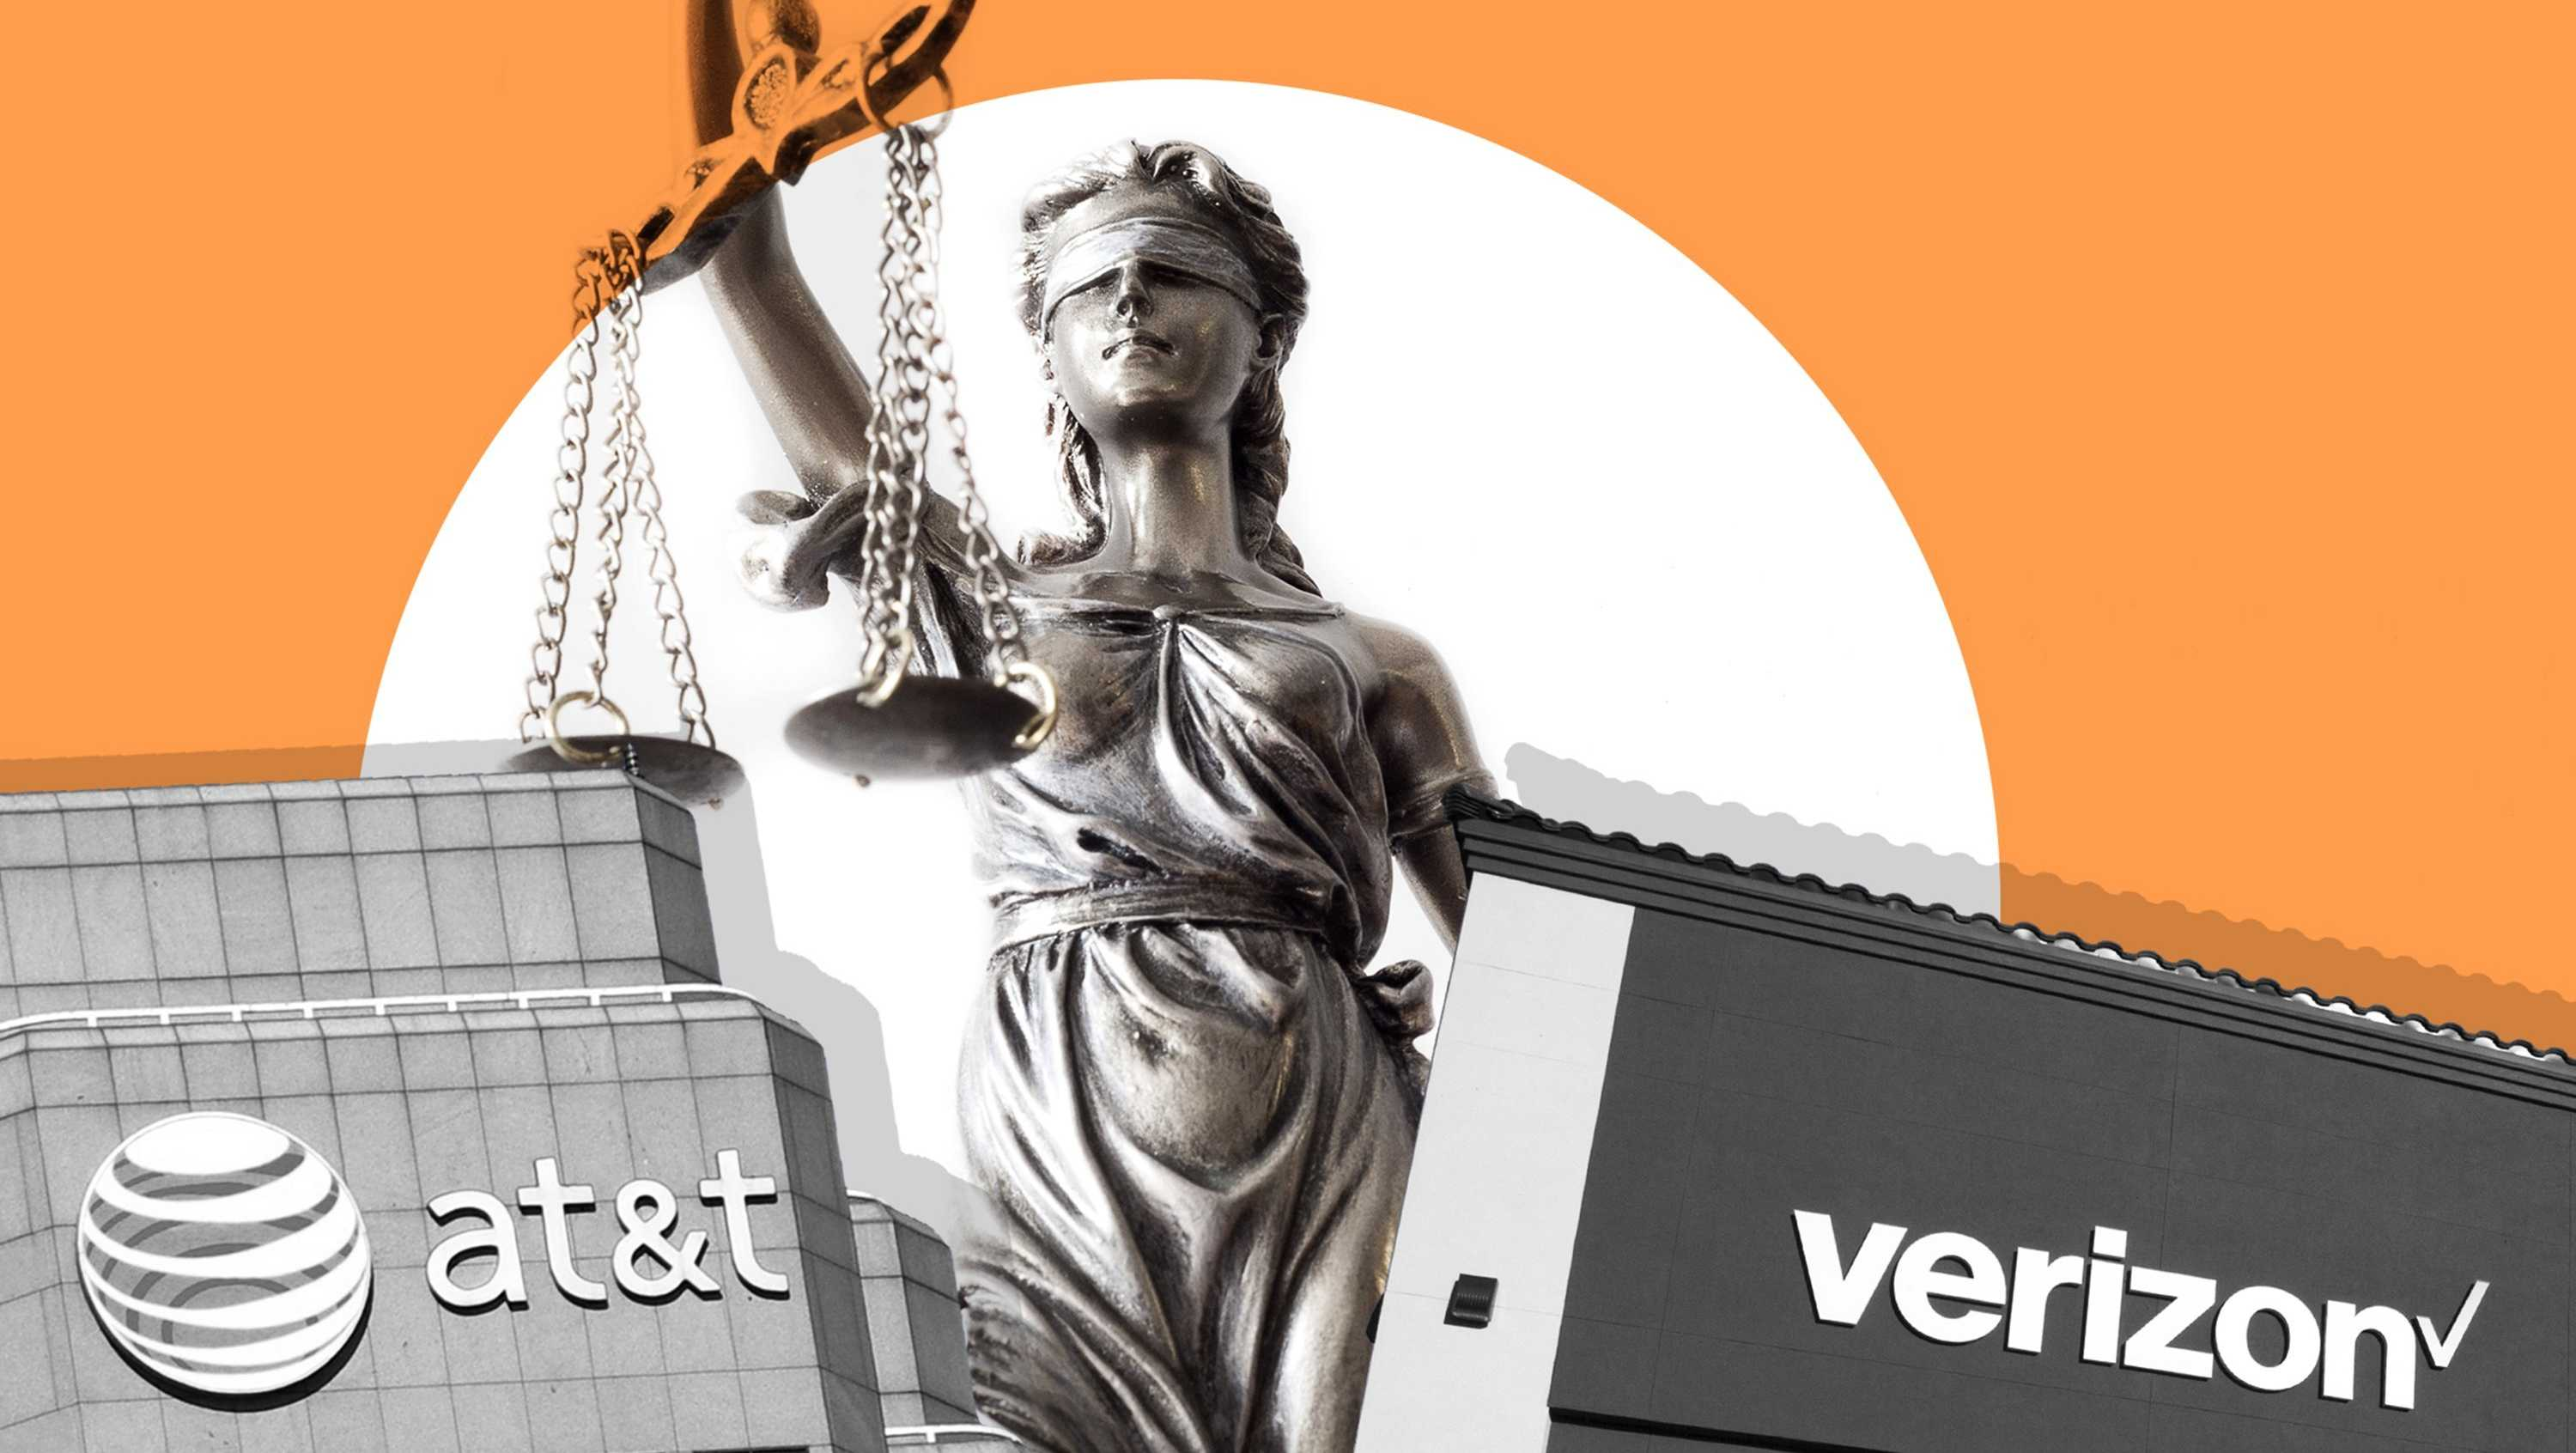 The U.S. Justice Department is probing some of the leading wireless carriers and an industry group over possible coordination to make it harder for customers to switch carriers.